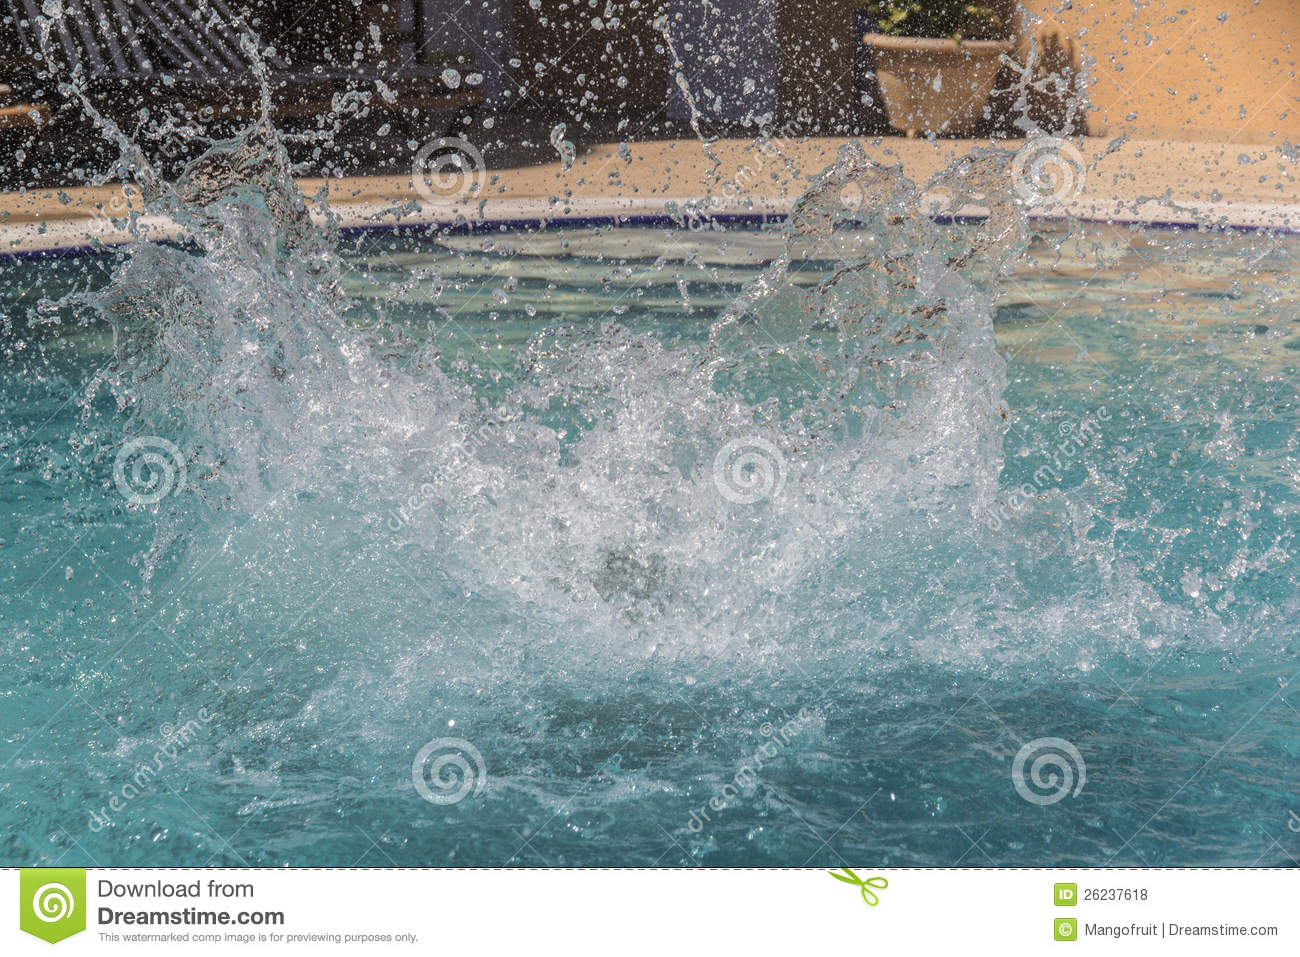 Water splashes in the swimming pool stock photo image of clean full 26237618 for How to make swimming pool water sparkle